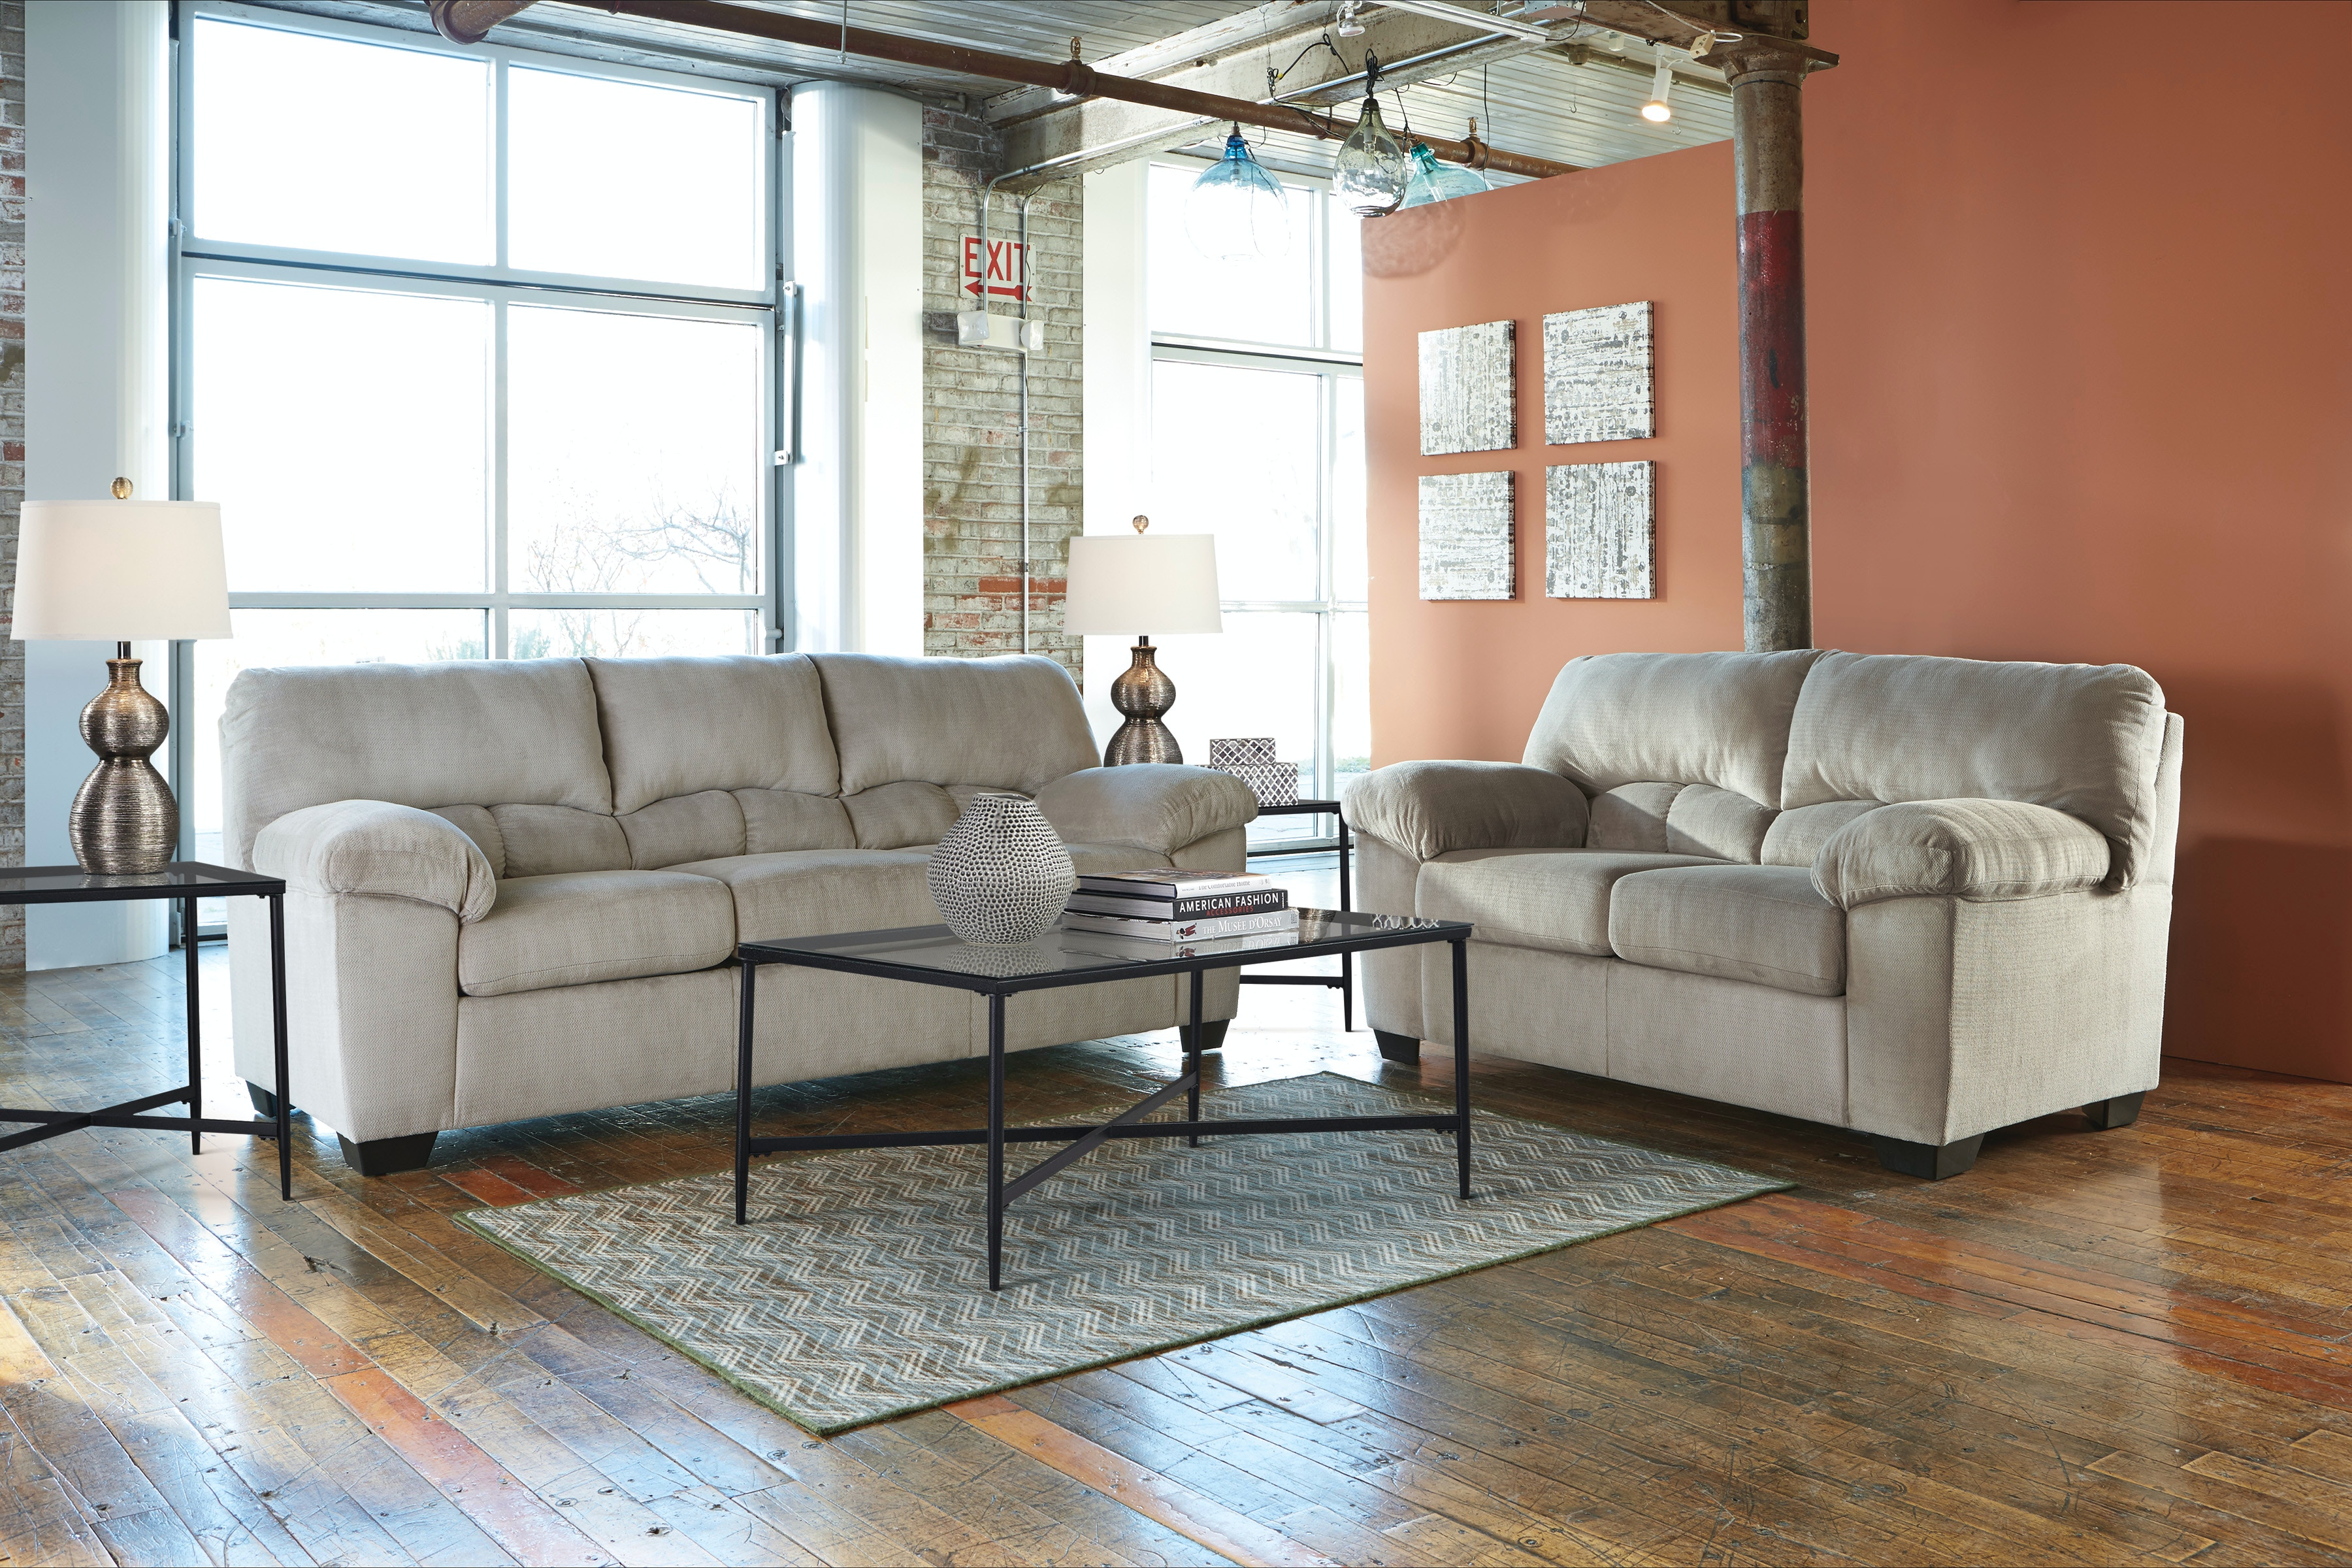 living room package blue with dark furniture 7 piece signature design by ashley 95401 at feceras mattress